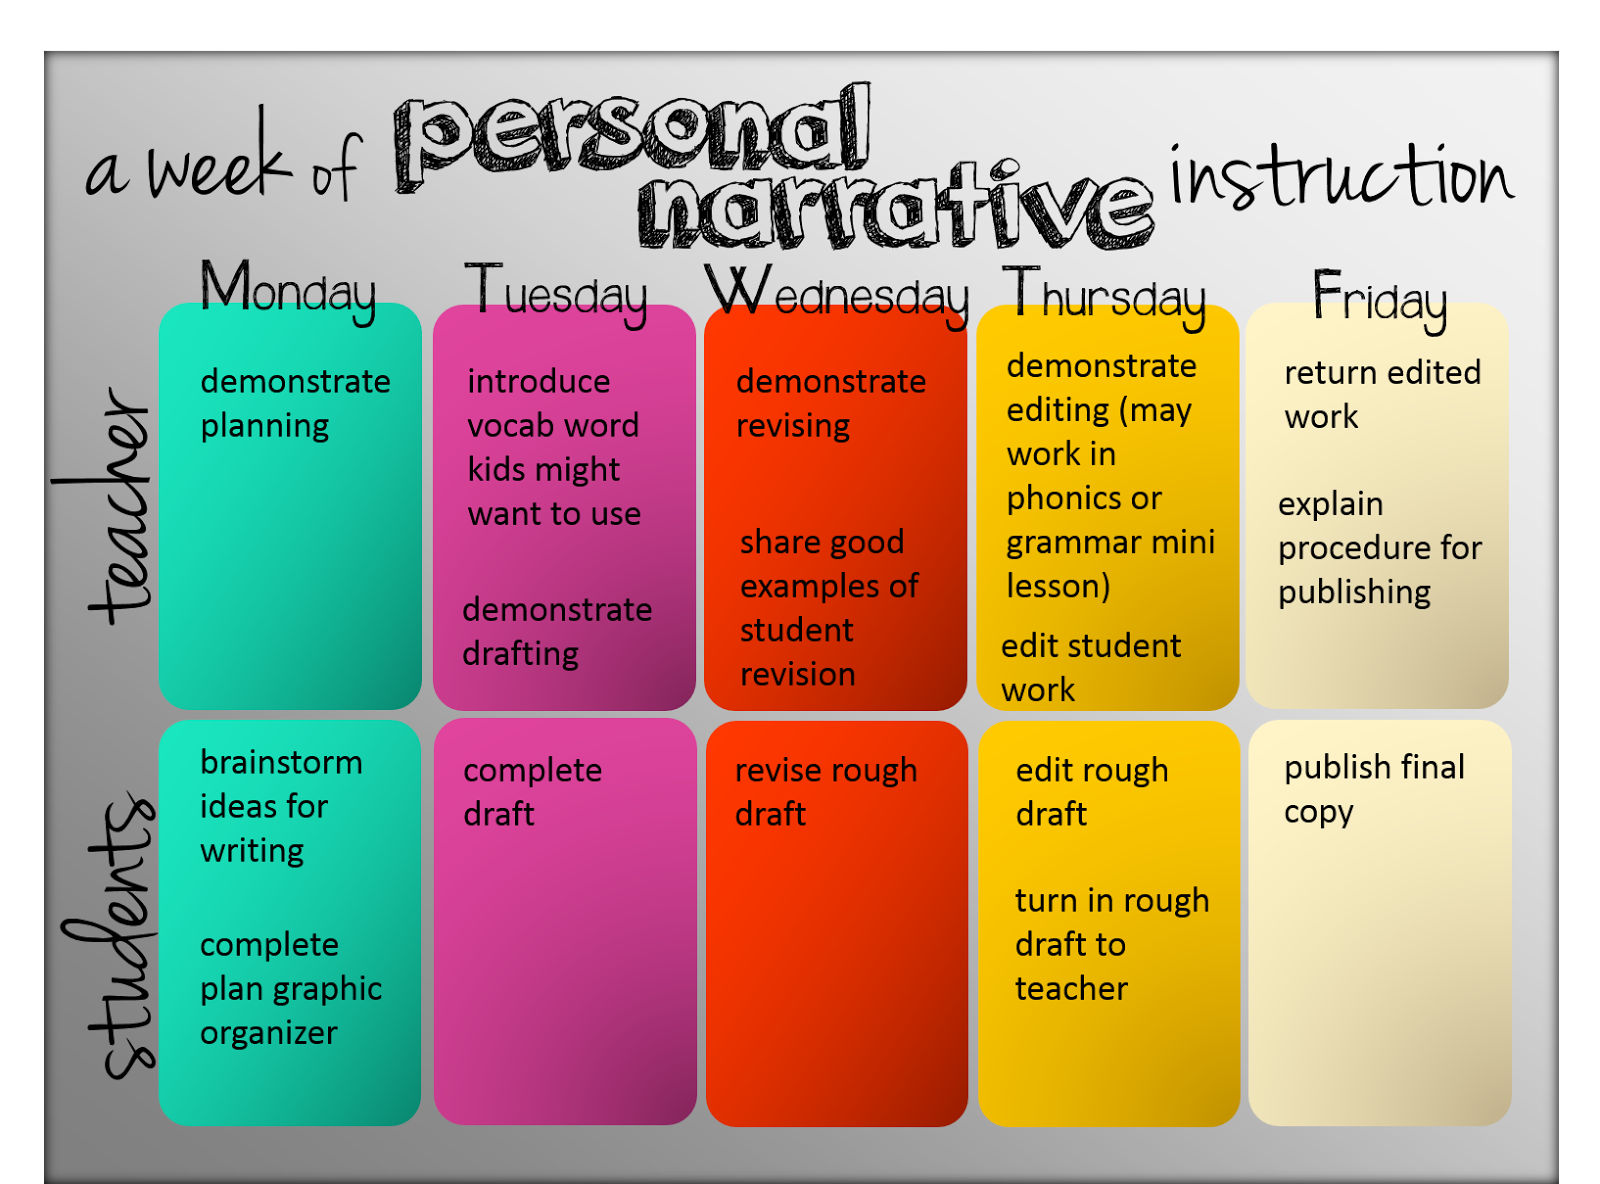 008 The Classroom Key Personal Narrative Writing Personal